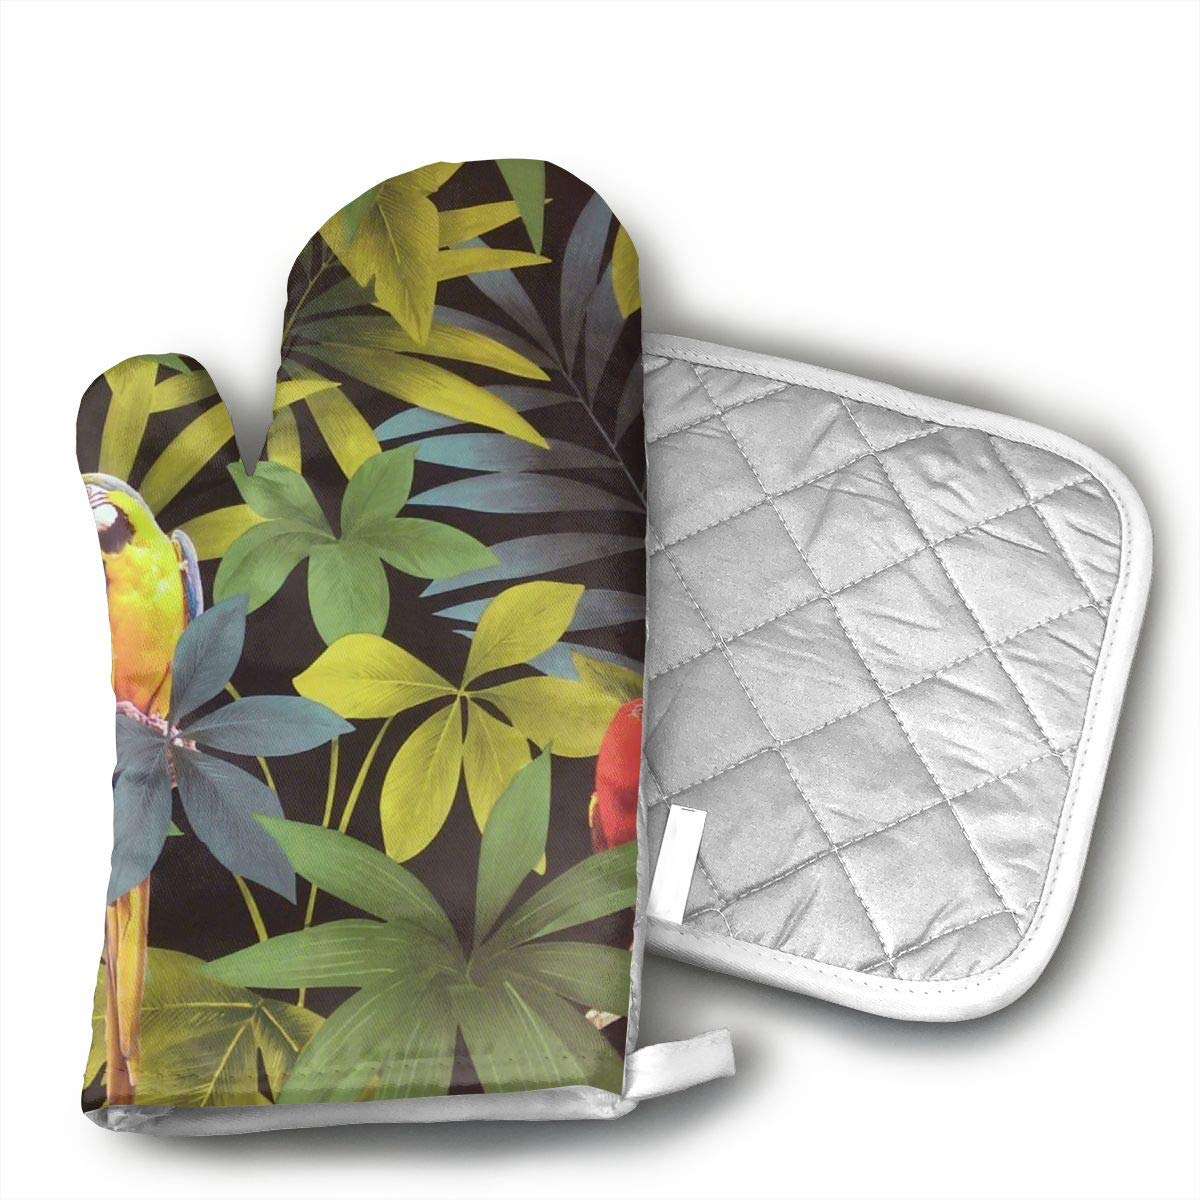 Wiqo9 Parrot Oven Mitts and Pot Holders Kitchen Mitten Cooking Gloves,Cooking, Baking, BBQ.